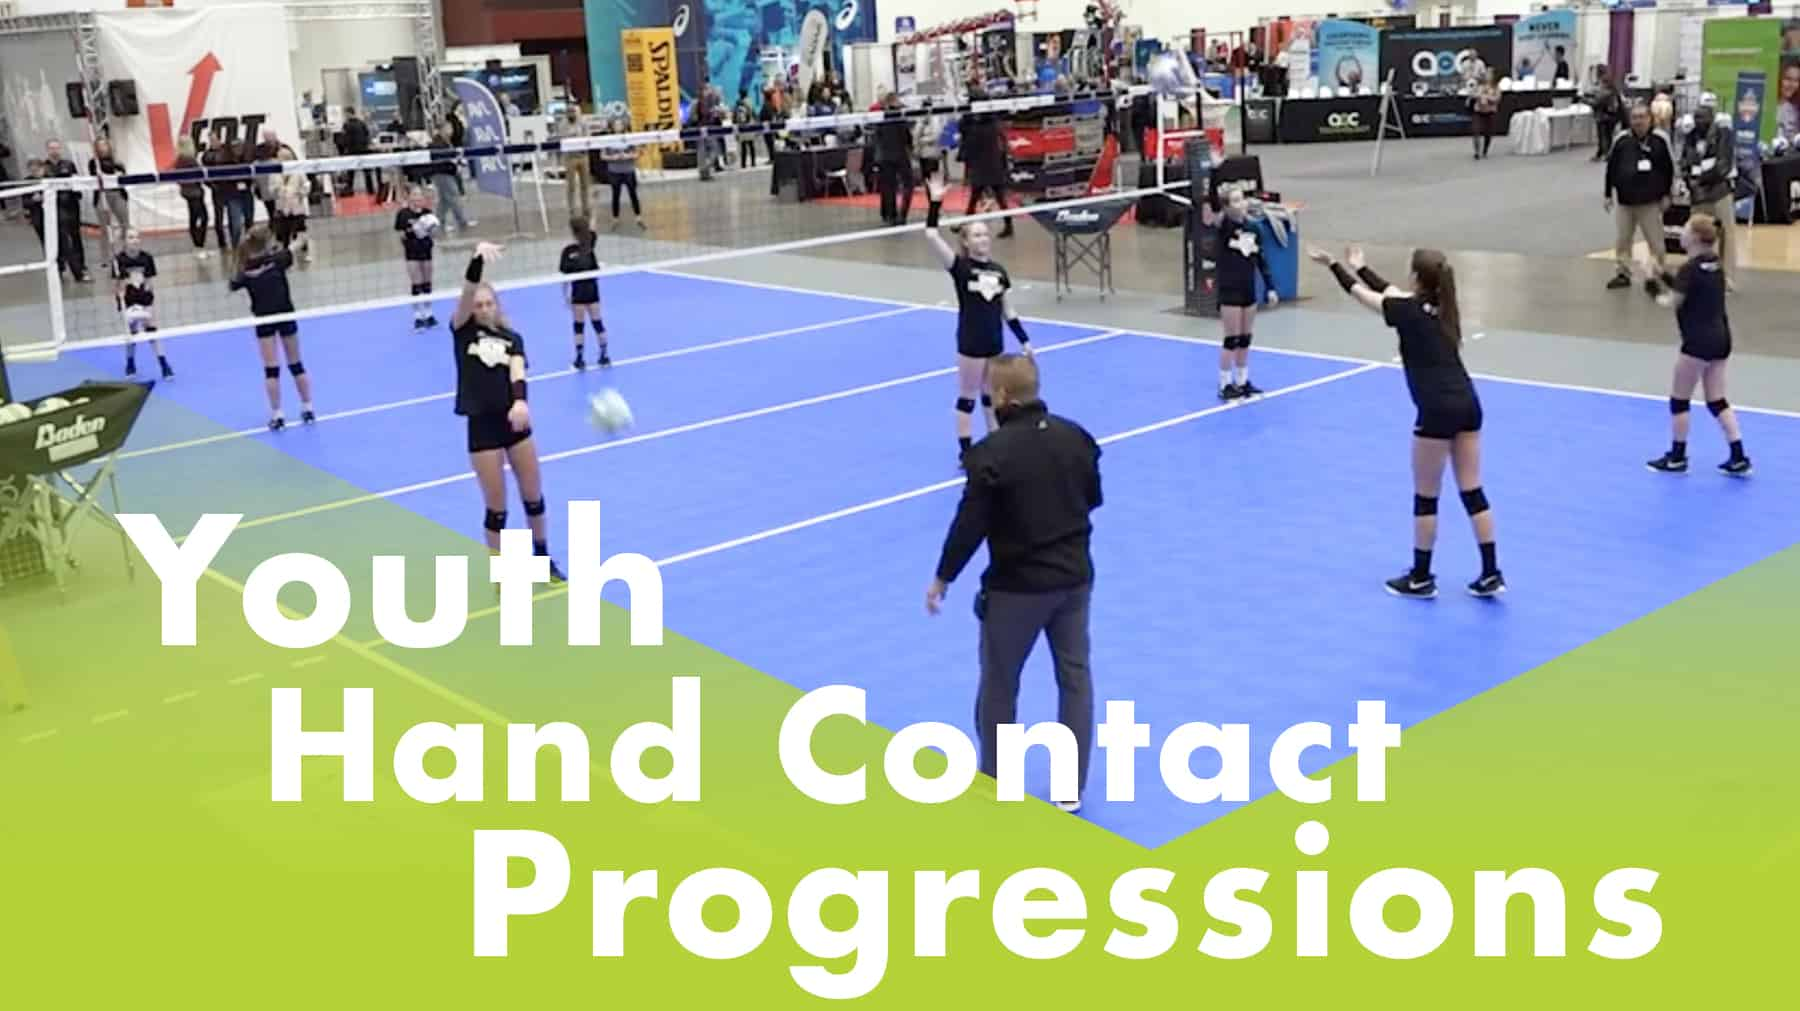 Youth Hand Contact Progressions